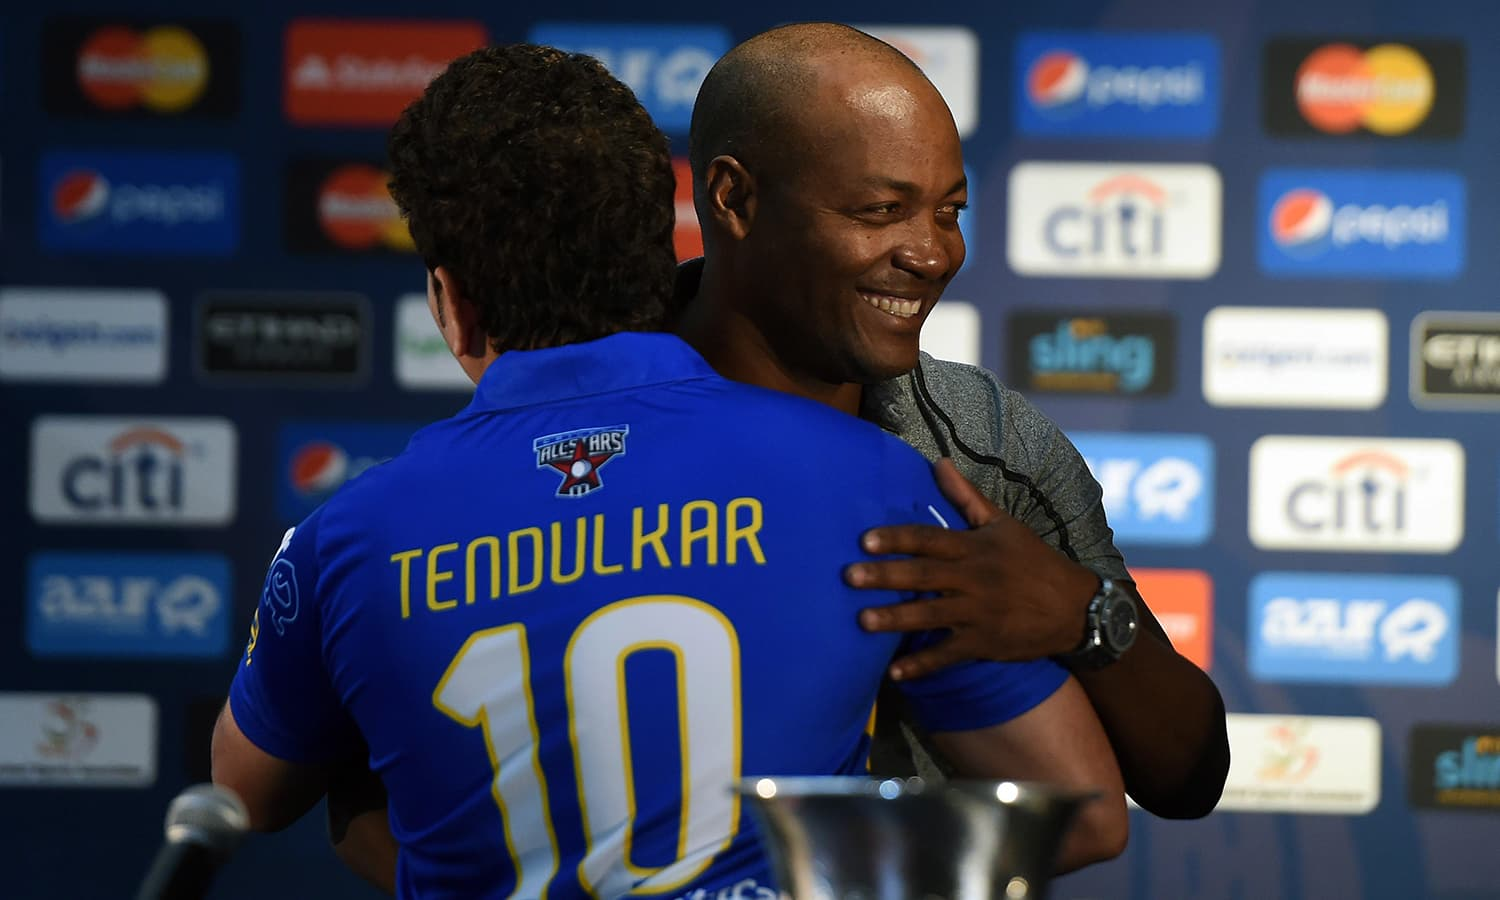 """Retired Indian cricketer Sachin Tendulkar (L) hugs West Indies' Brian Lara during a press conference in New York on November 5, 2015. Tendulkar and Warne will lead a lineup of renowned cricket players from around the world in the inaugural """"Cricket All-Stars,"""" a three-game series to be played in Major League Baseball stadiums in New York , Houston and Los Angeles, to promote cricket the US. AFP PHOTO/JEWEL SAMAD"""